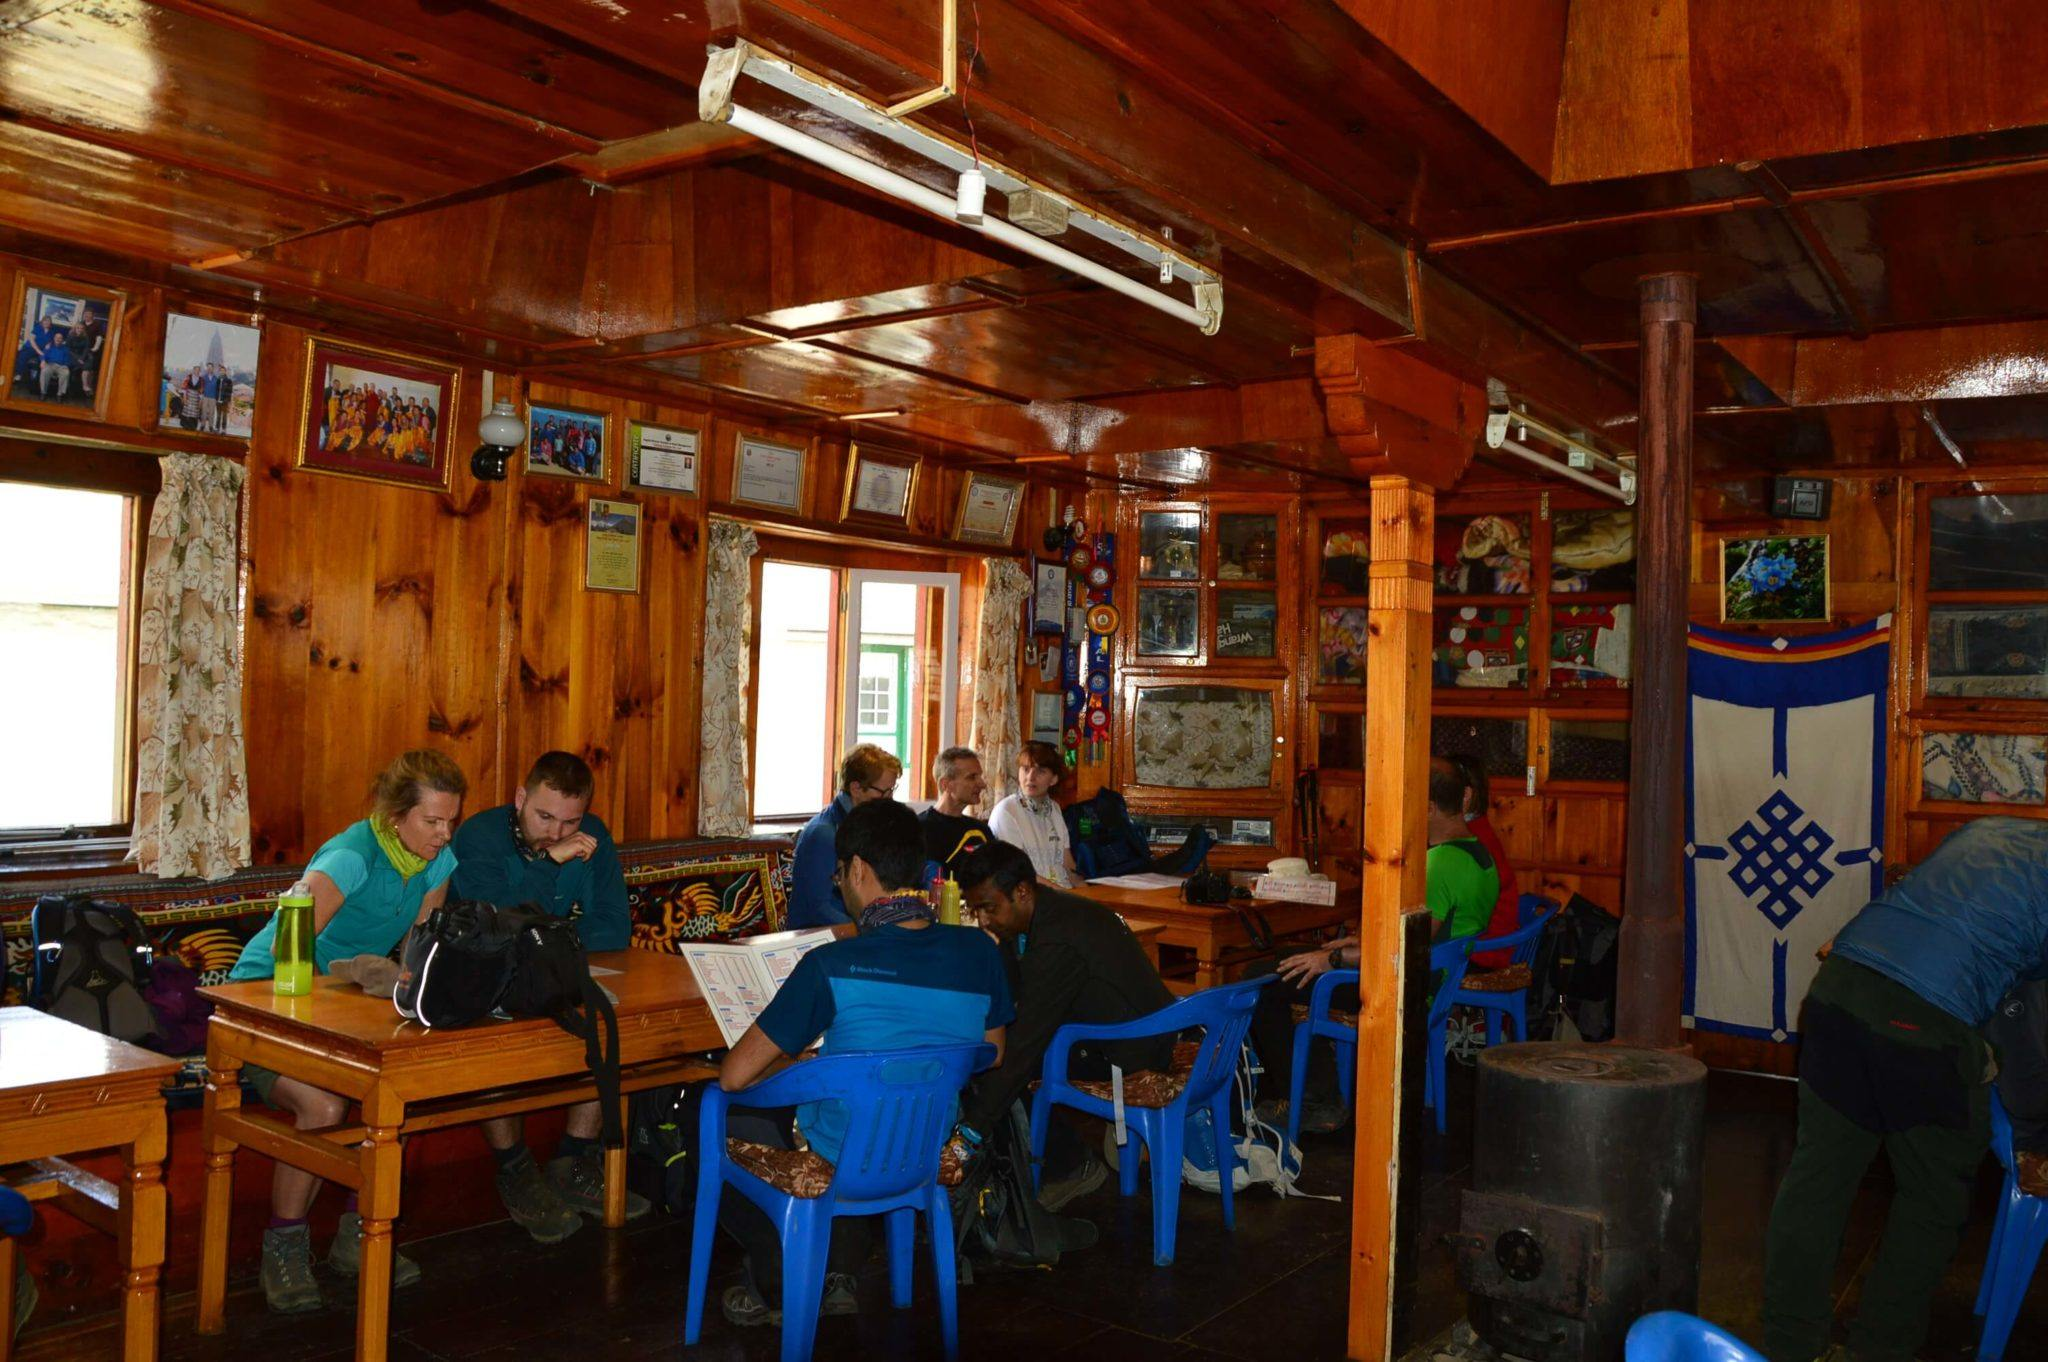 a typical tea house in nepal communal area with people at tables